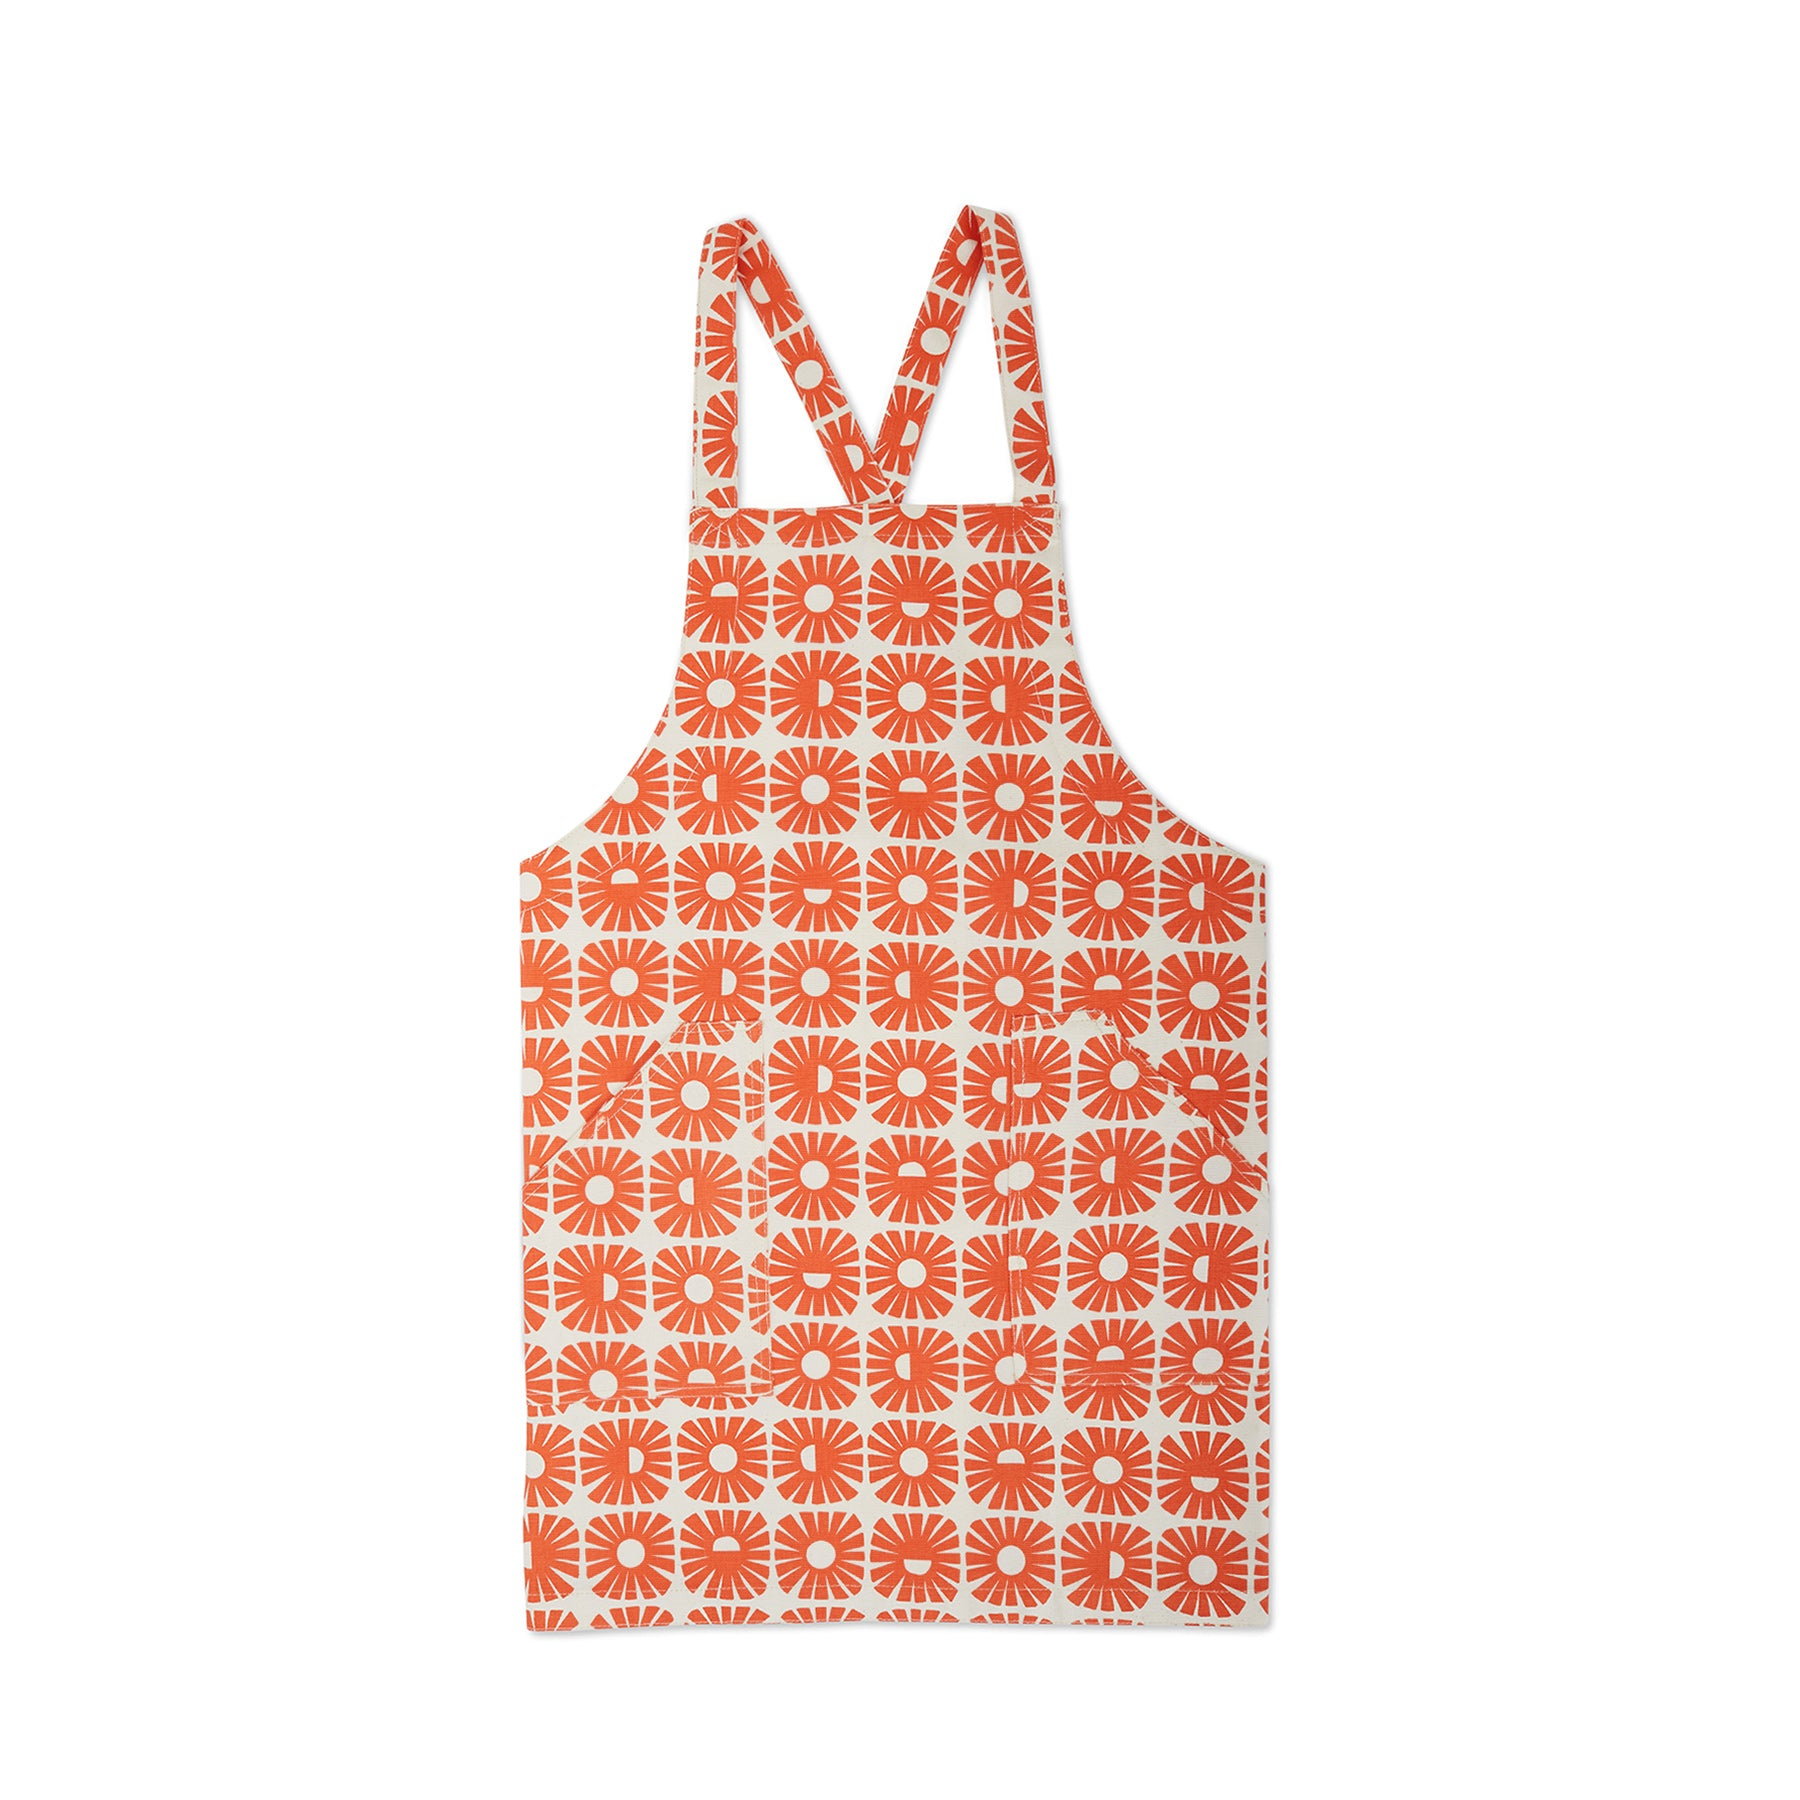 Sunnyside Pinny Apron in Persimmon Zoom Image 1